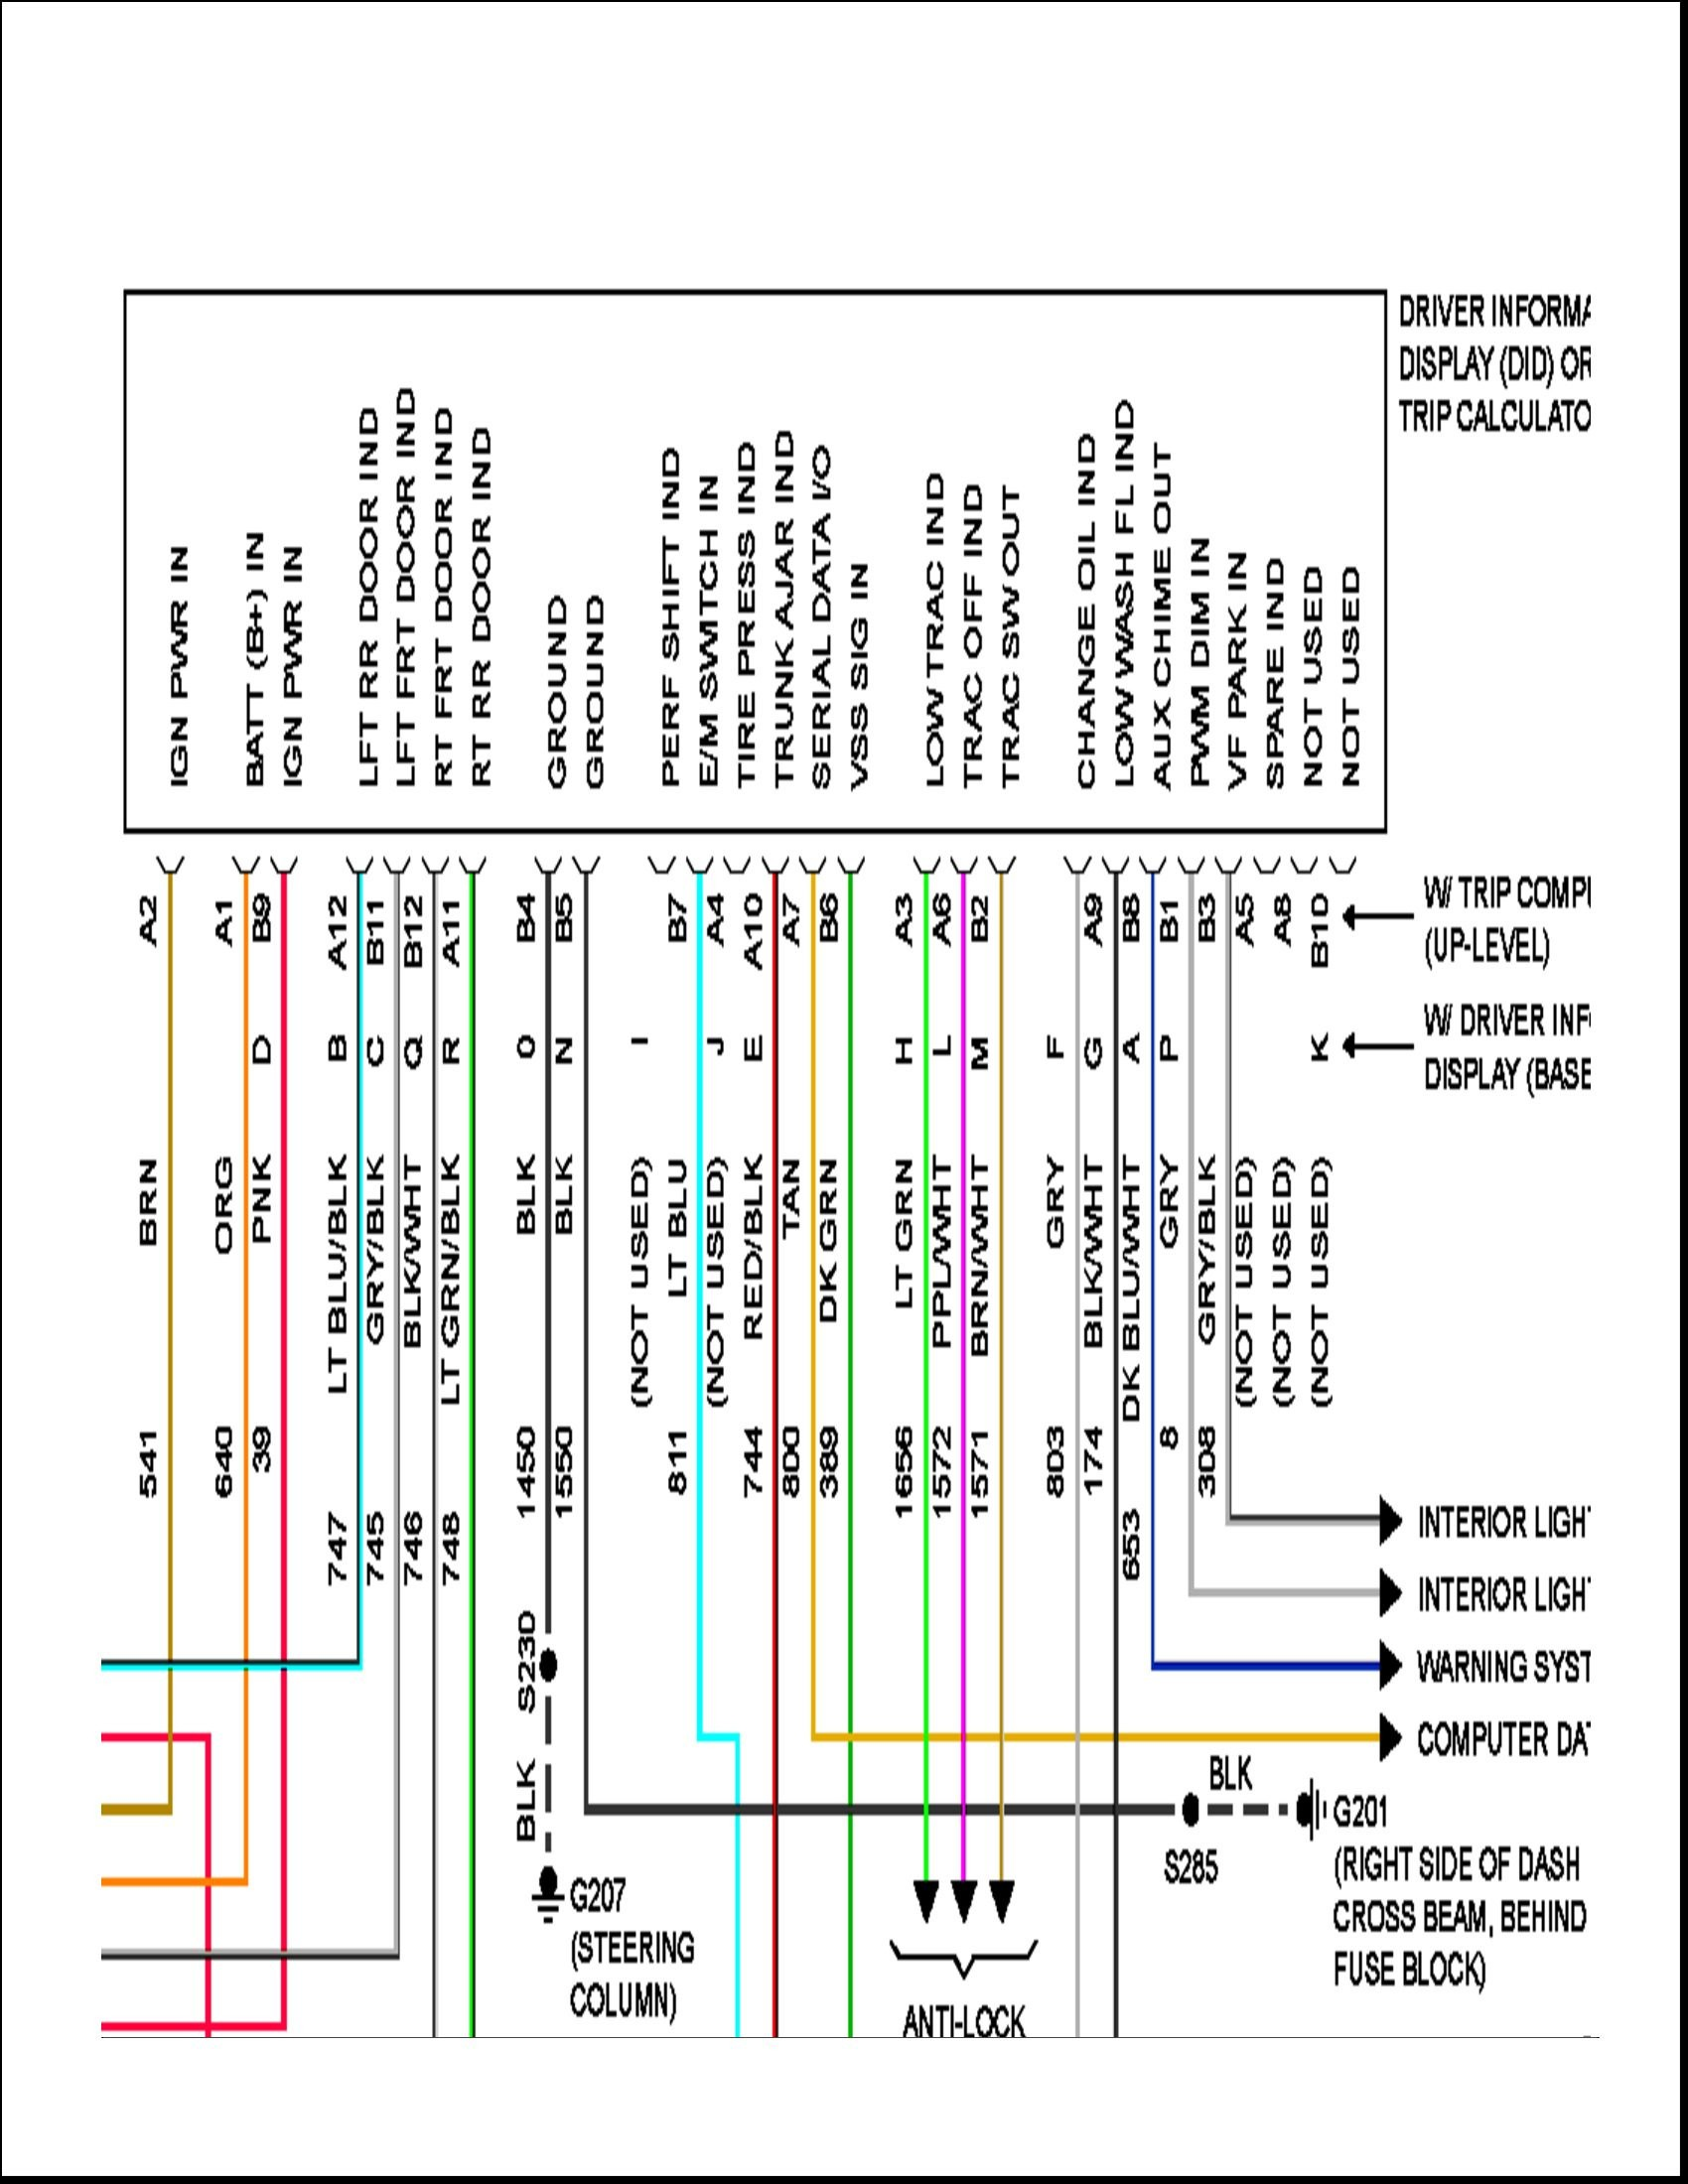 [SCHEMATICS_4US]  02 Grand Am Wiring Schematic Deluxe Telecaster Wiring Diagram -  hazzard.jambu.astrea-construction.fr | Delco Radio Wiring Diagram 15071233 |  | Begeboy Wiring Diagram Source - astrea-construction.fr